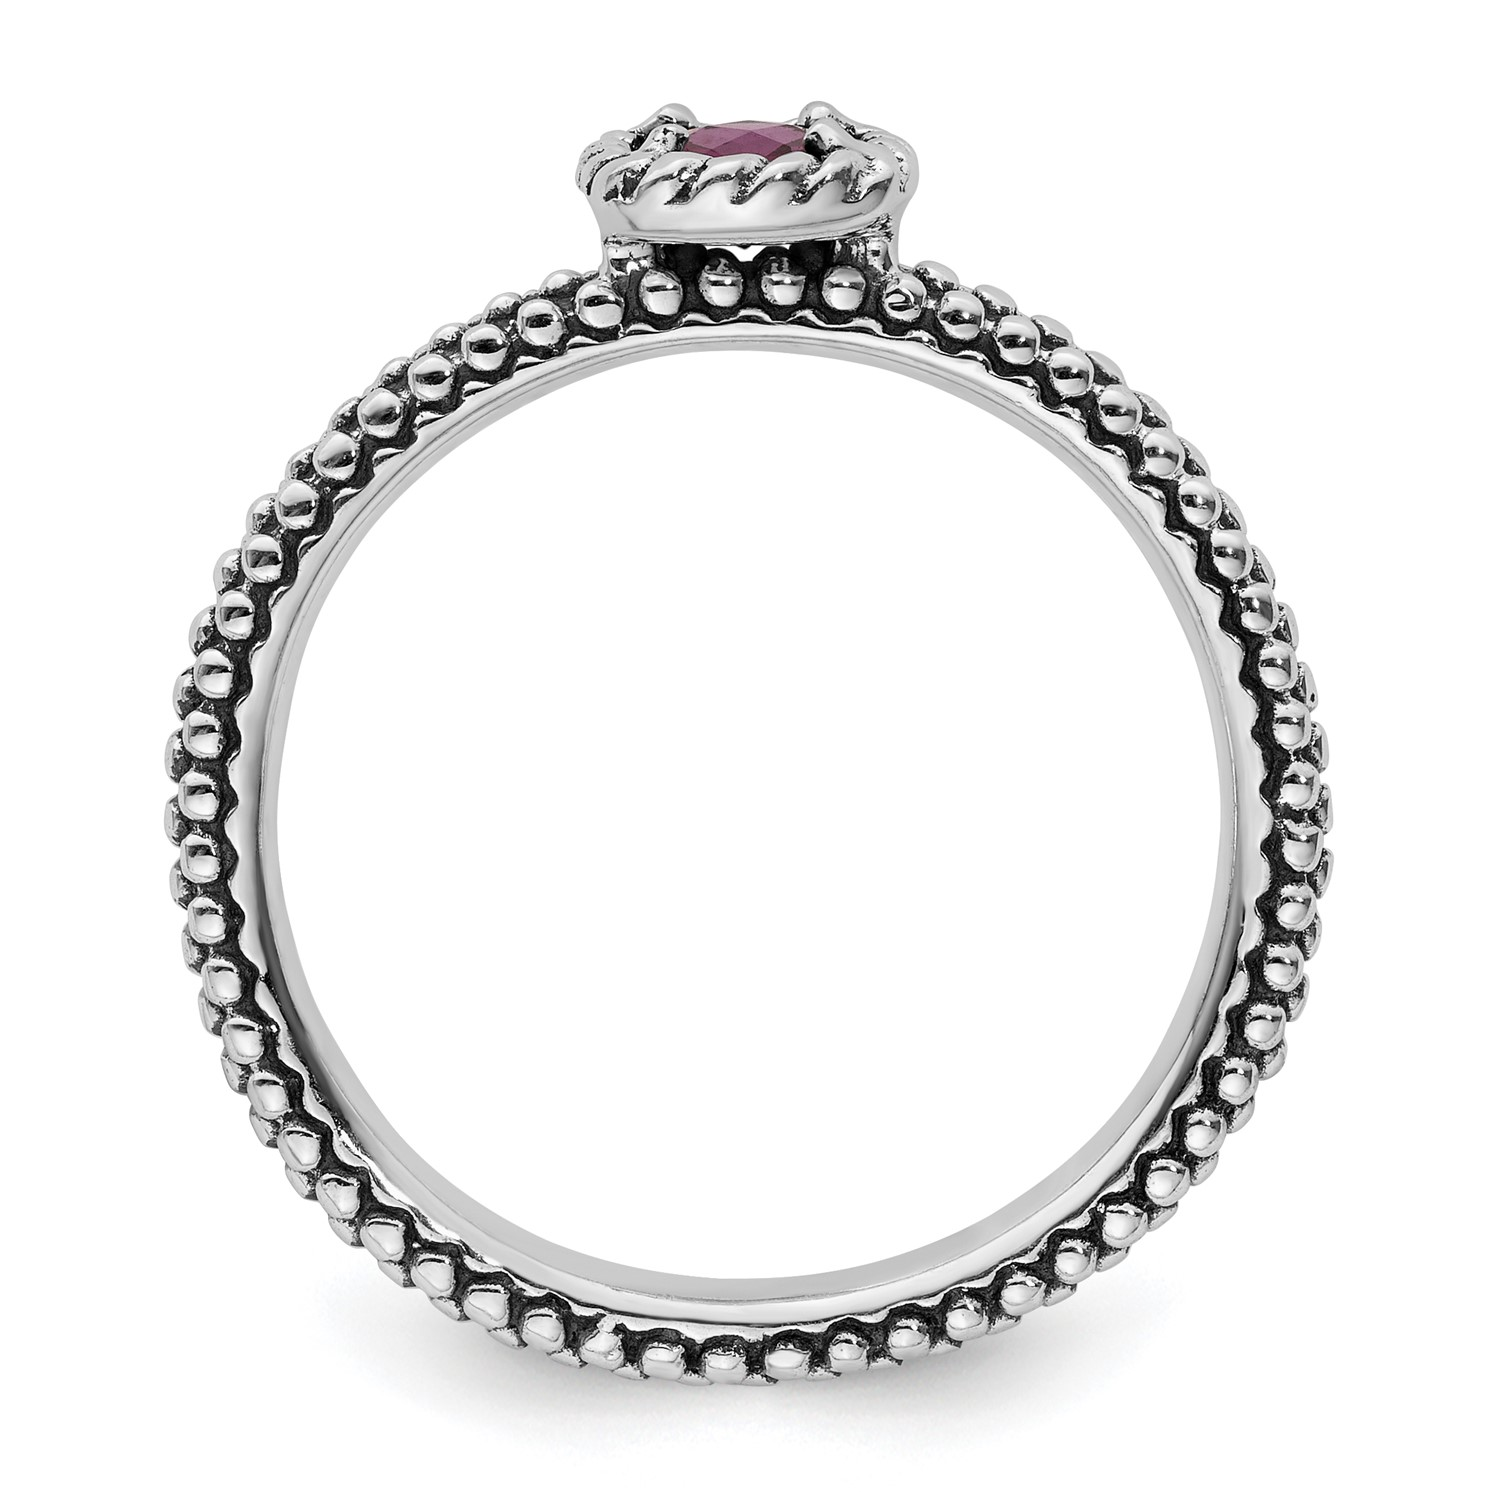 9c0b6d914d106 Details about Sterling Silver Stackable Expressions Checker-cut Rhodolite  Garnet Antiqued Ring